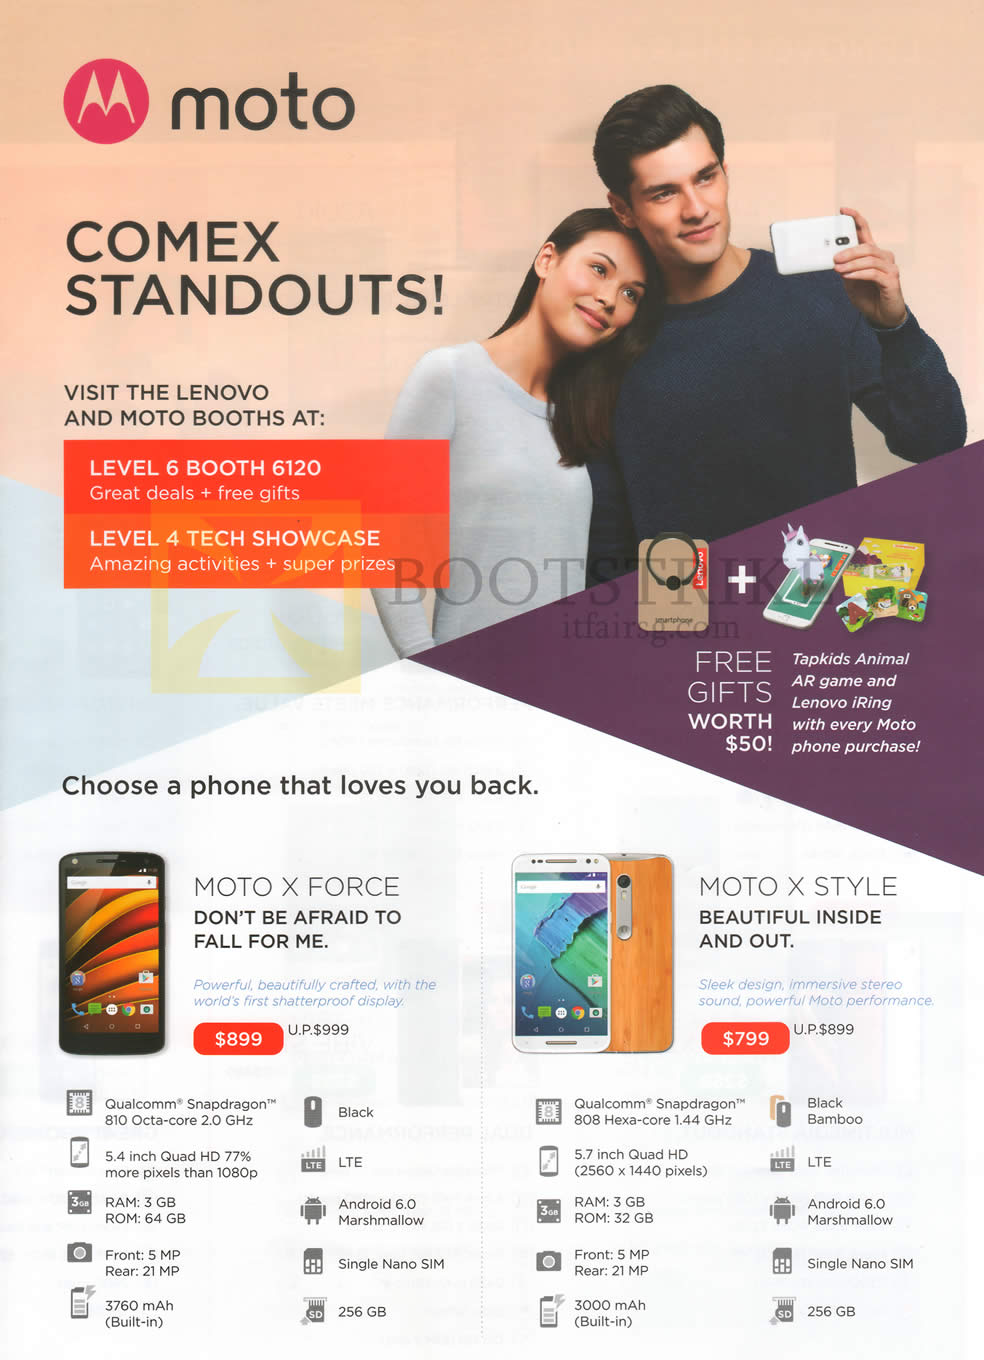 COMEX 2016 price list image brochure of Moto Mobile Phones Moto X Force, X Style